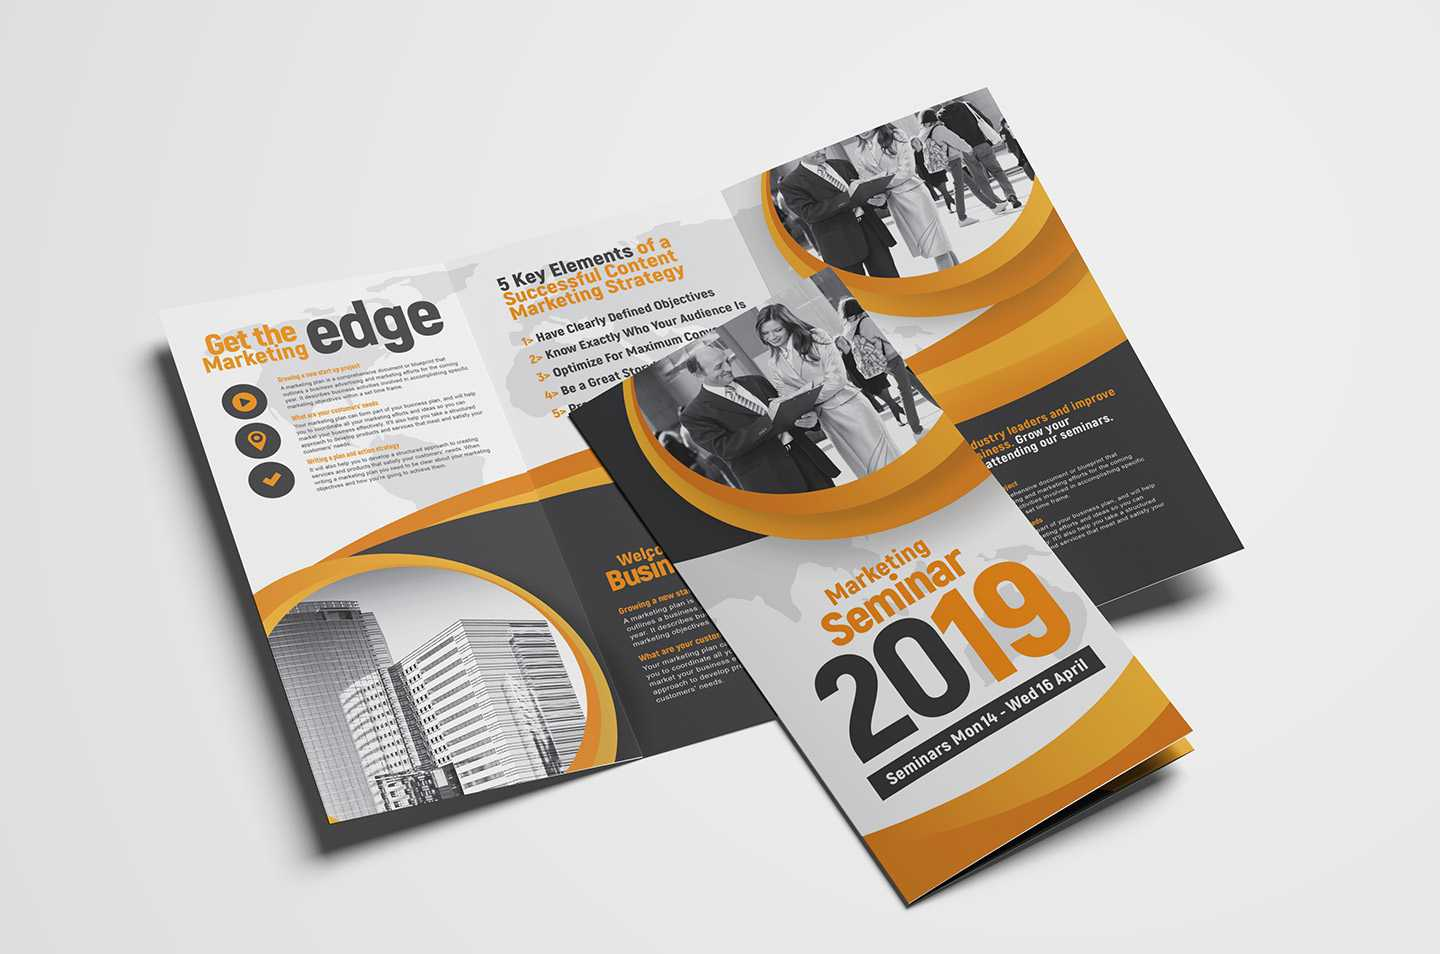 Marketing Seminar Tri Fold Brochure Template - Psd, Ai & Vector Throughout 3 Fold Brochure Template Psd